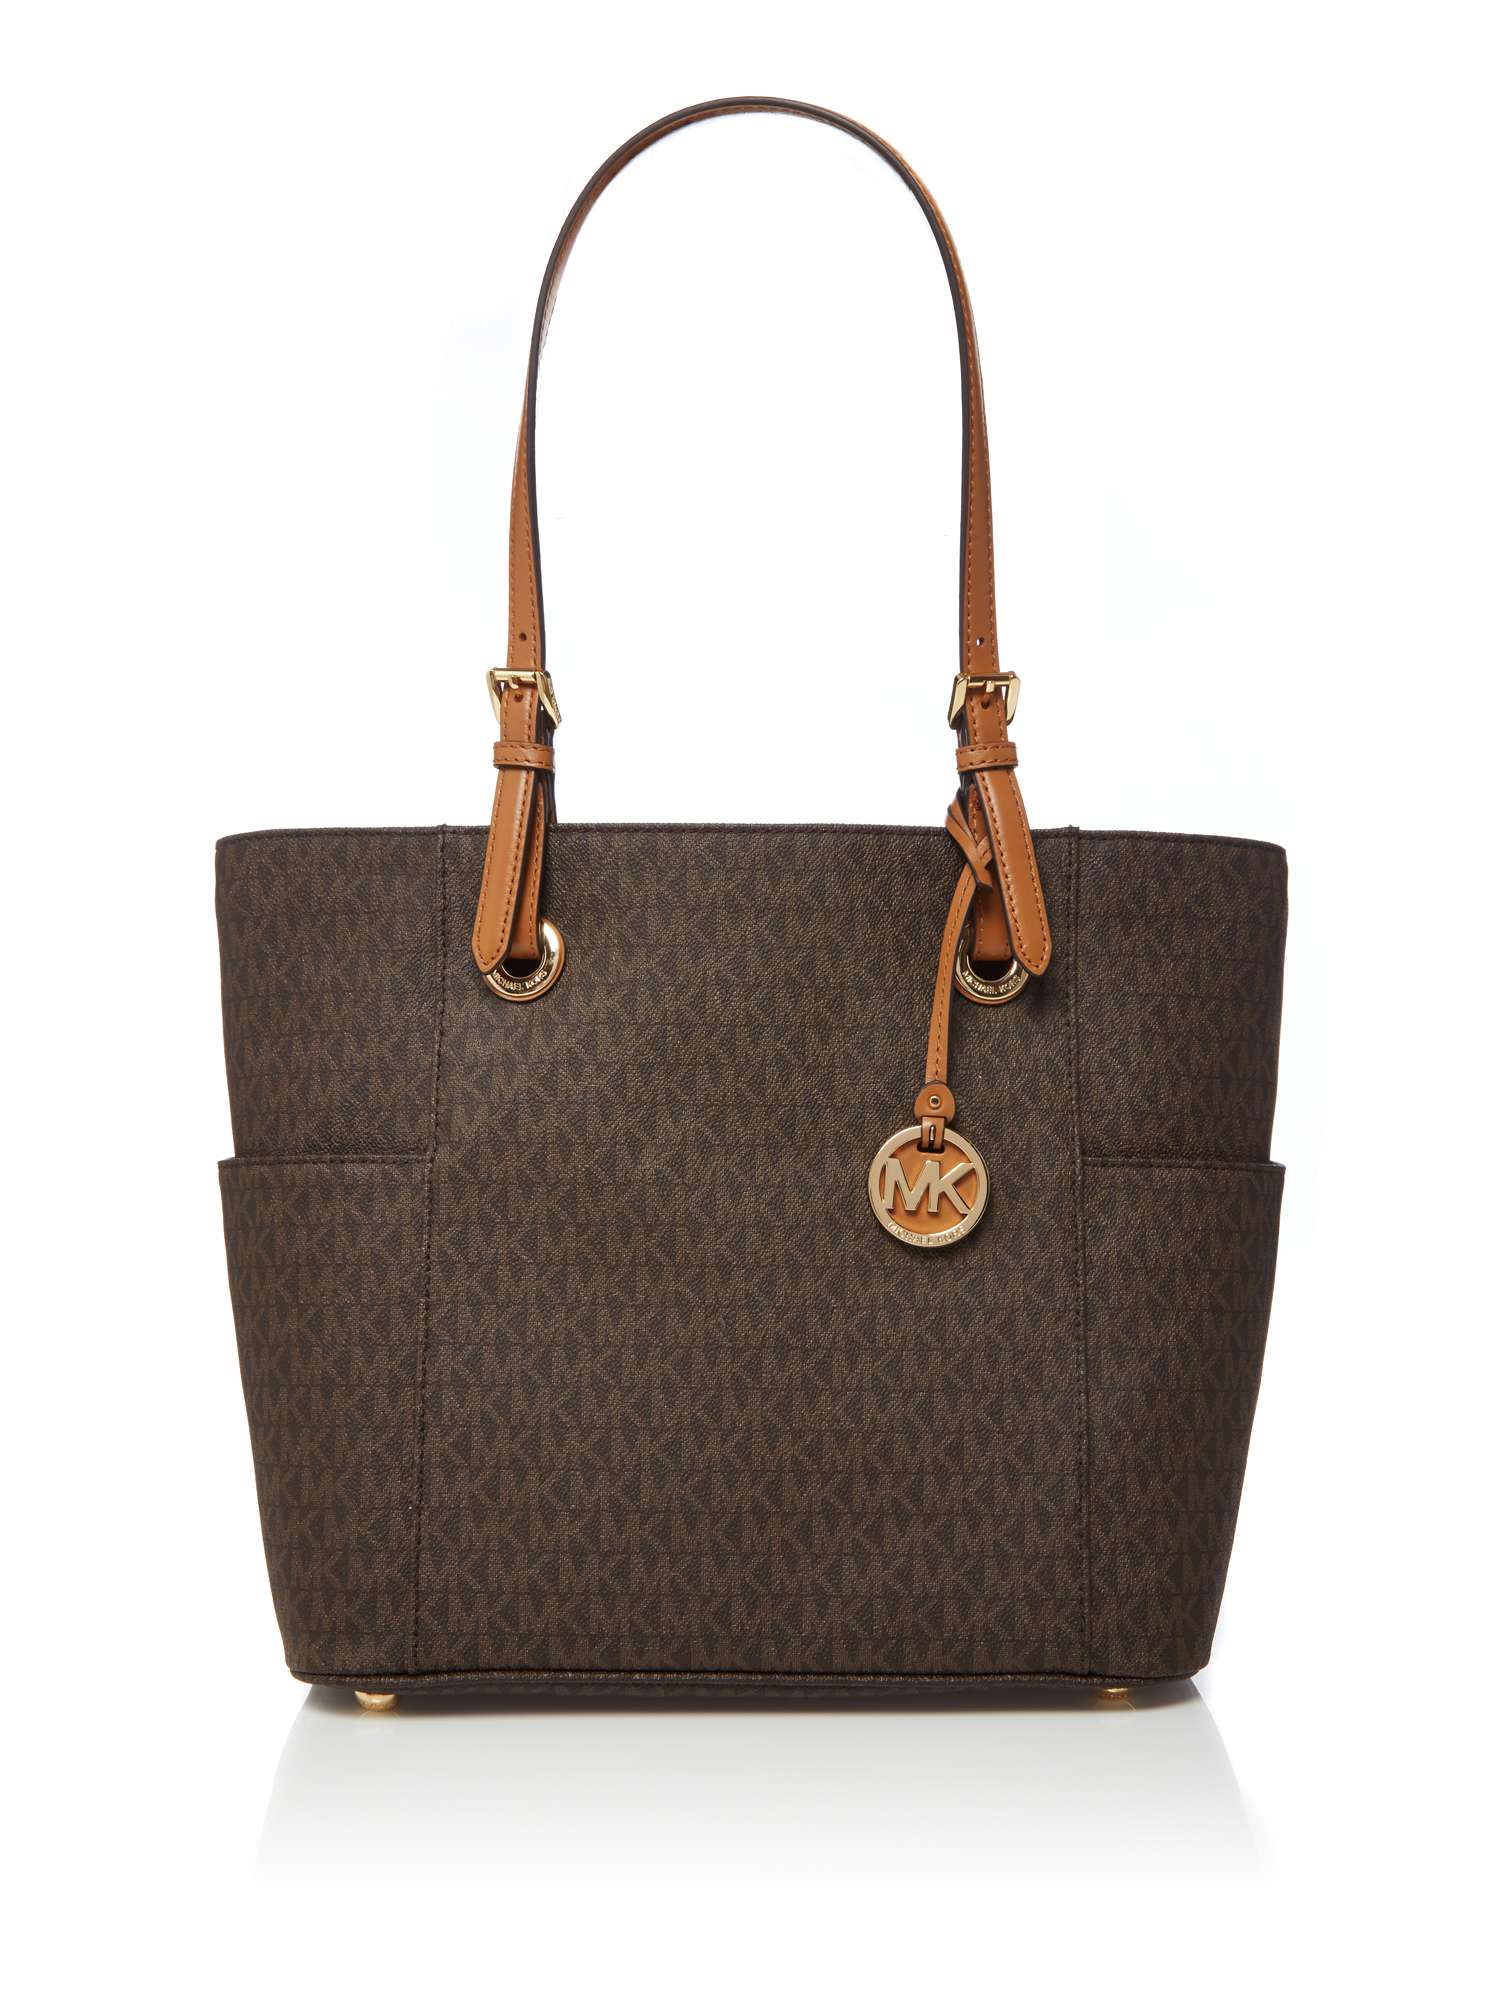 Michael Kors Jet Set Item Signature Tote Bag